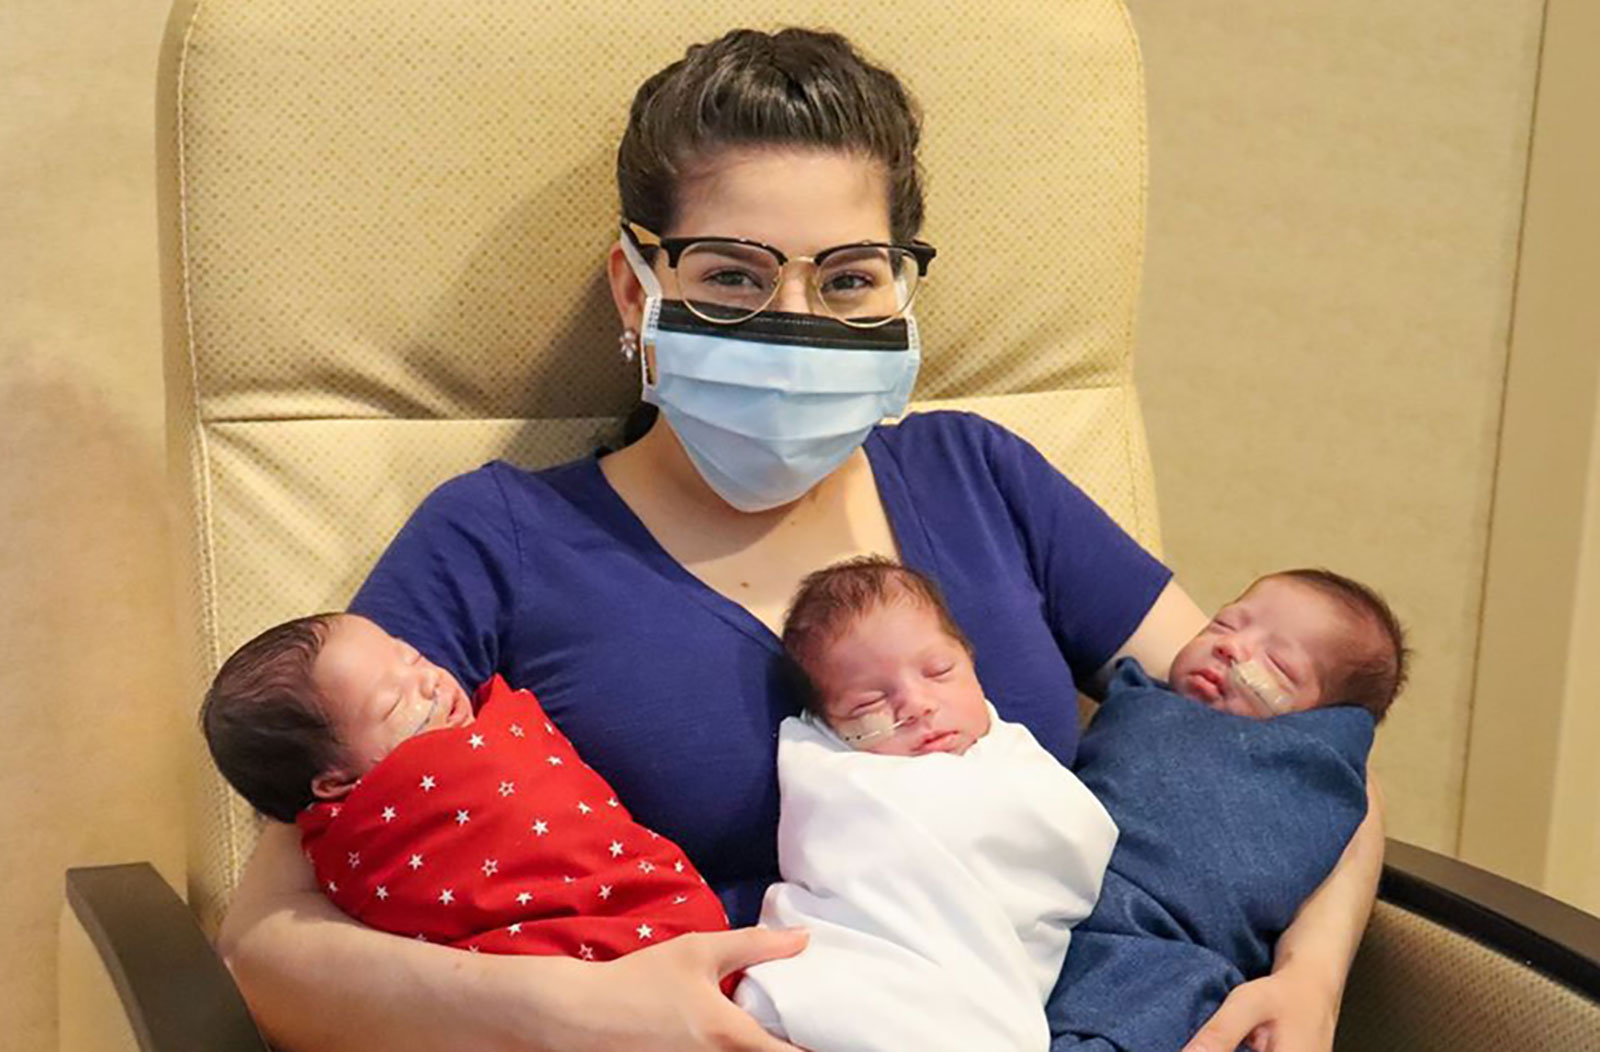 Maggie Sillero holds her triplets, who were born on June 4 after she beat Covid-19.